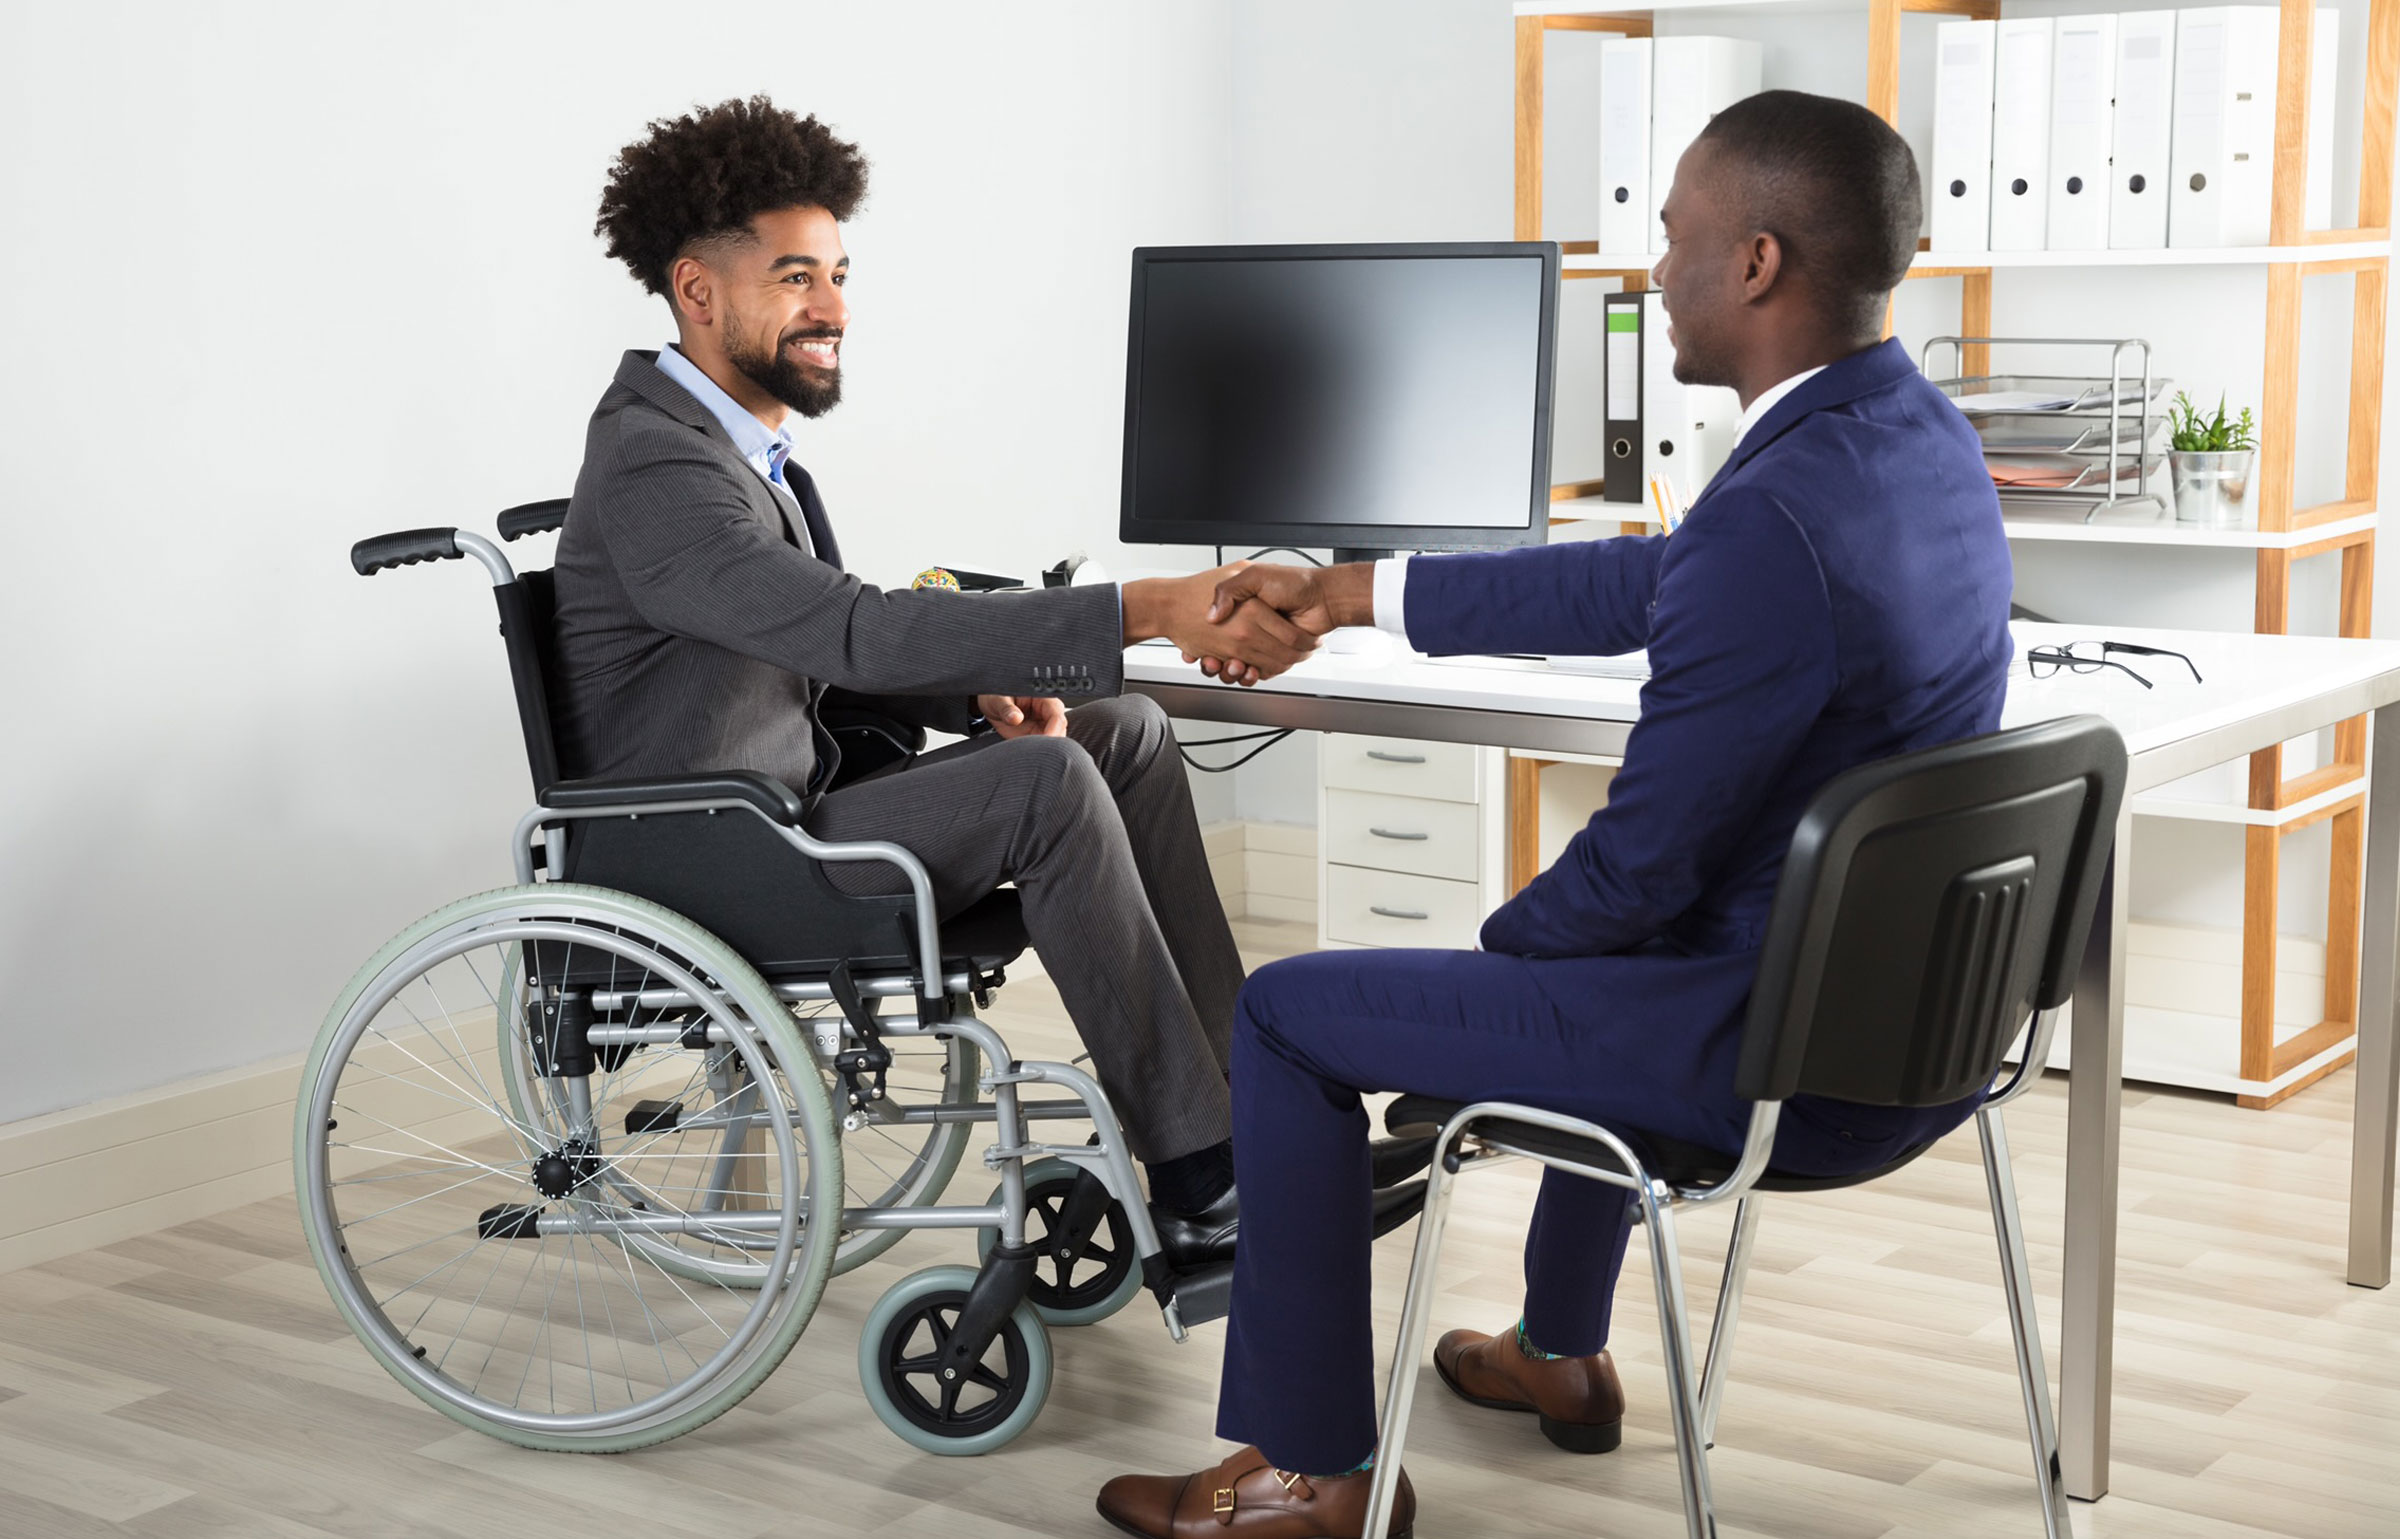 A businessman in a wheelchair shakes hands with a man sitting in a chair